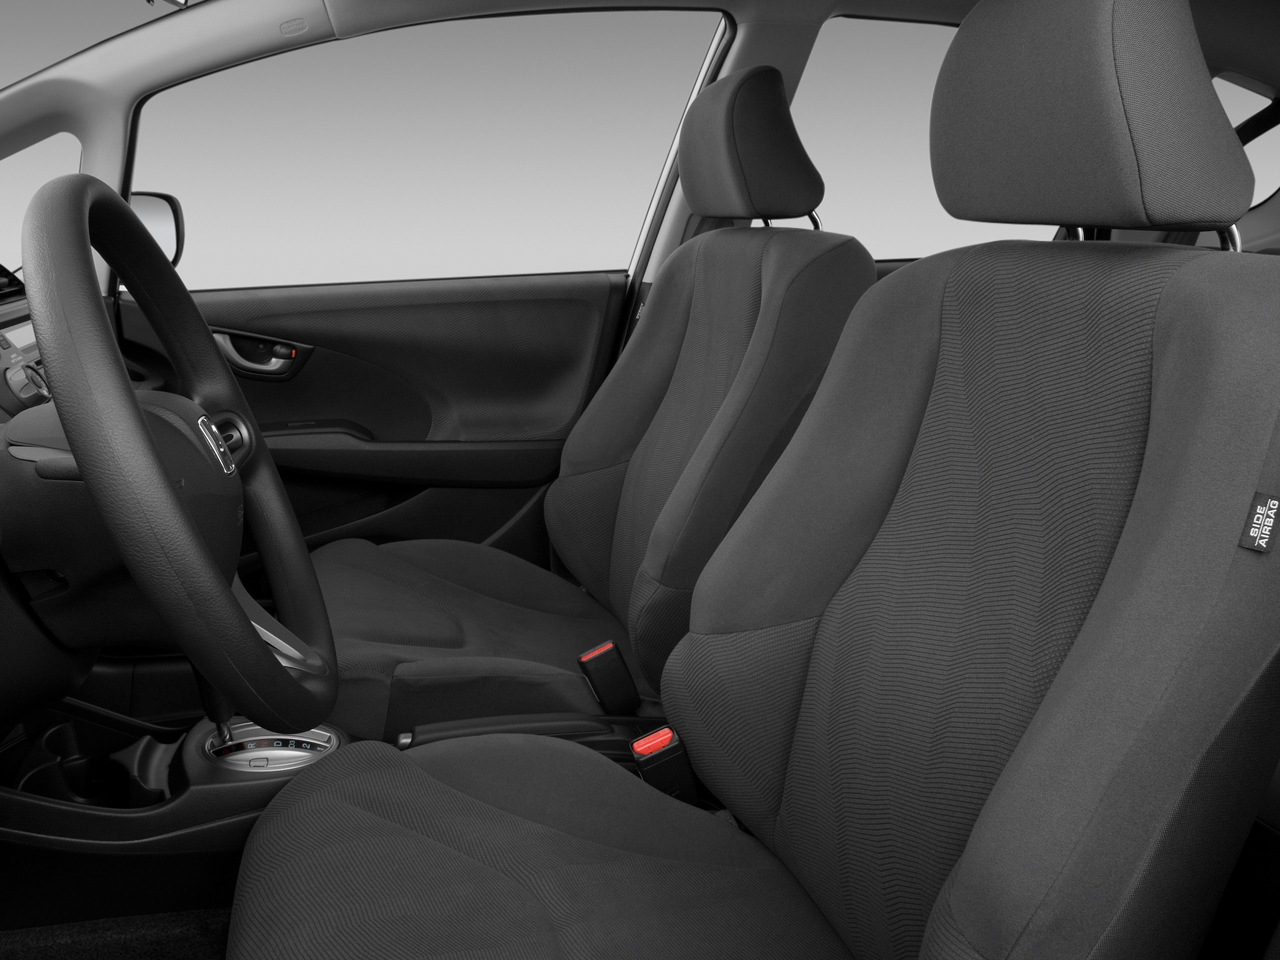 2016 ford mustang interior u s news amp world report - 40 50